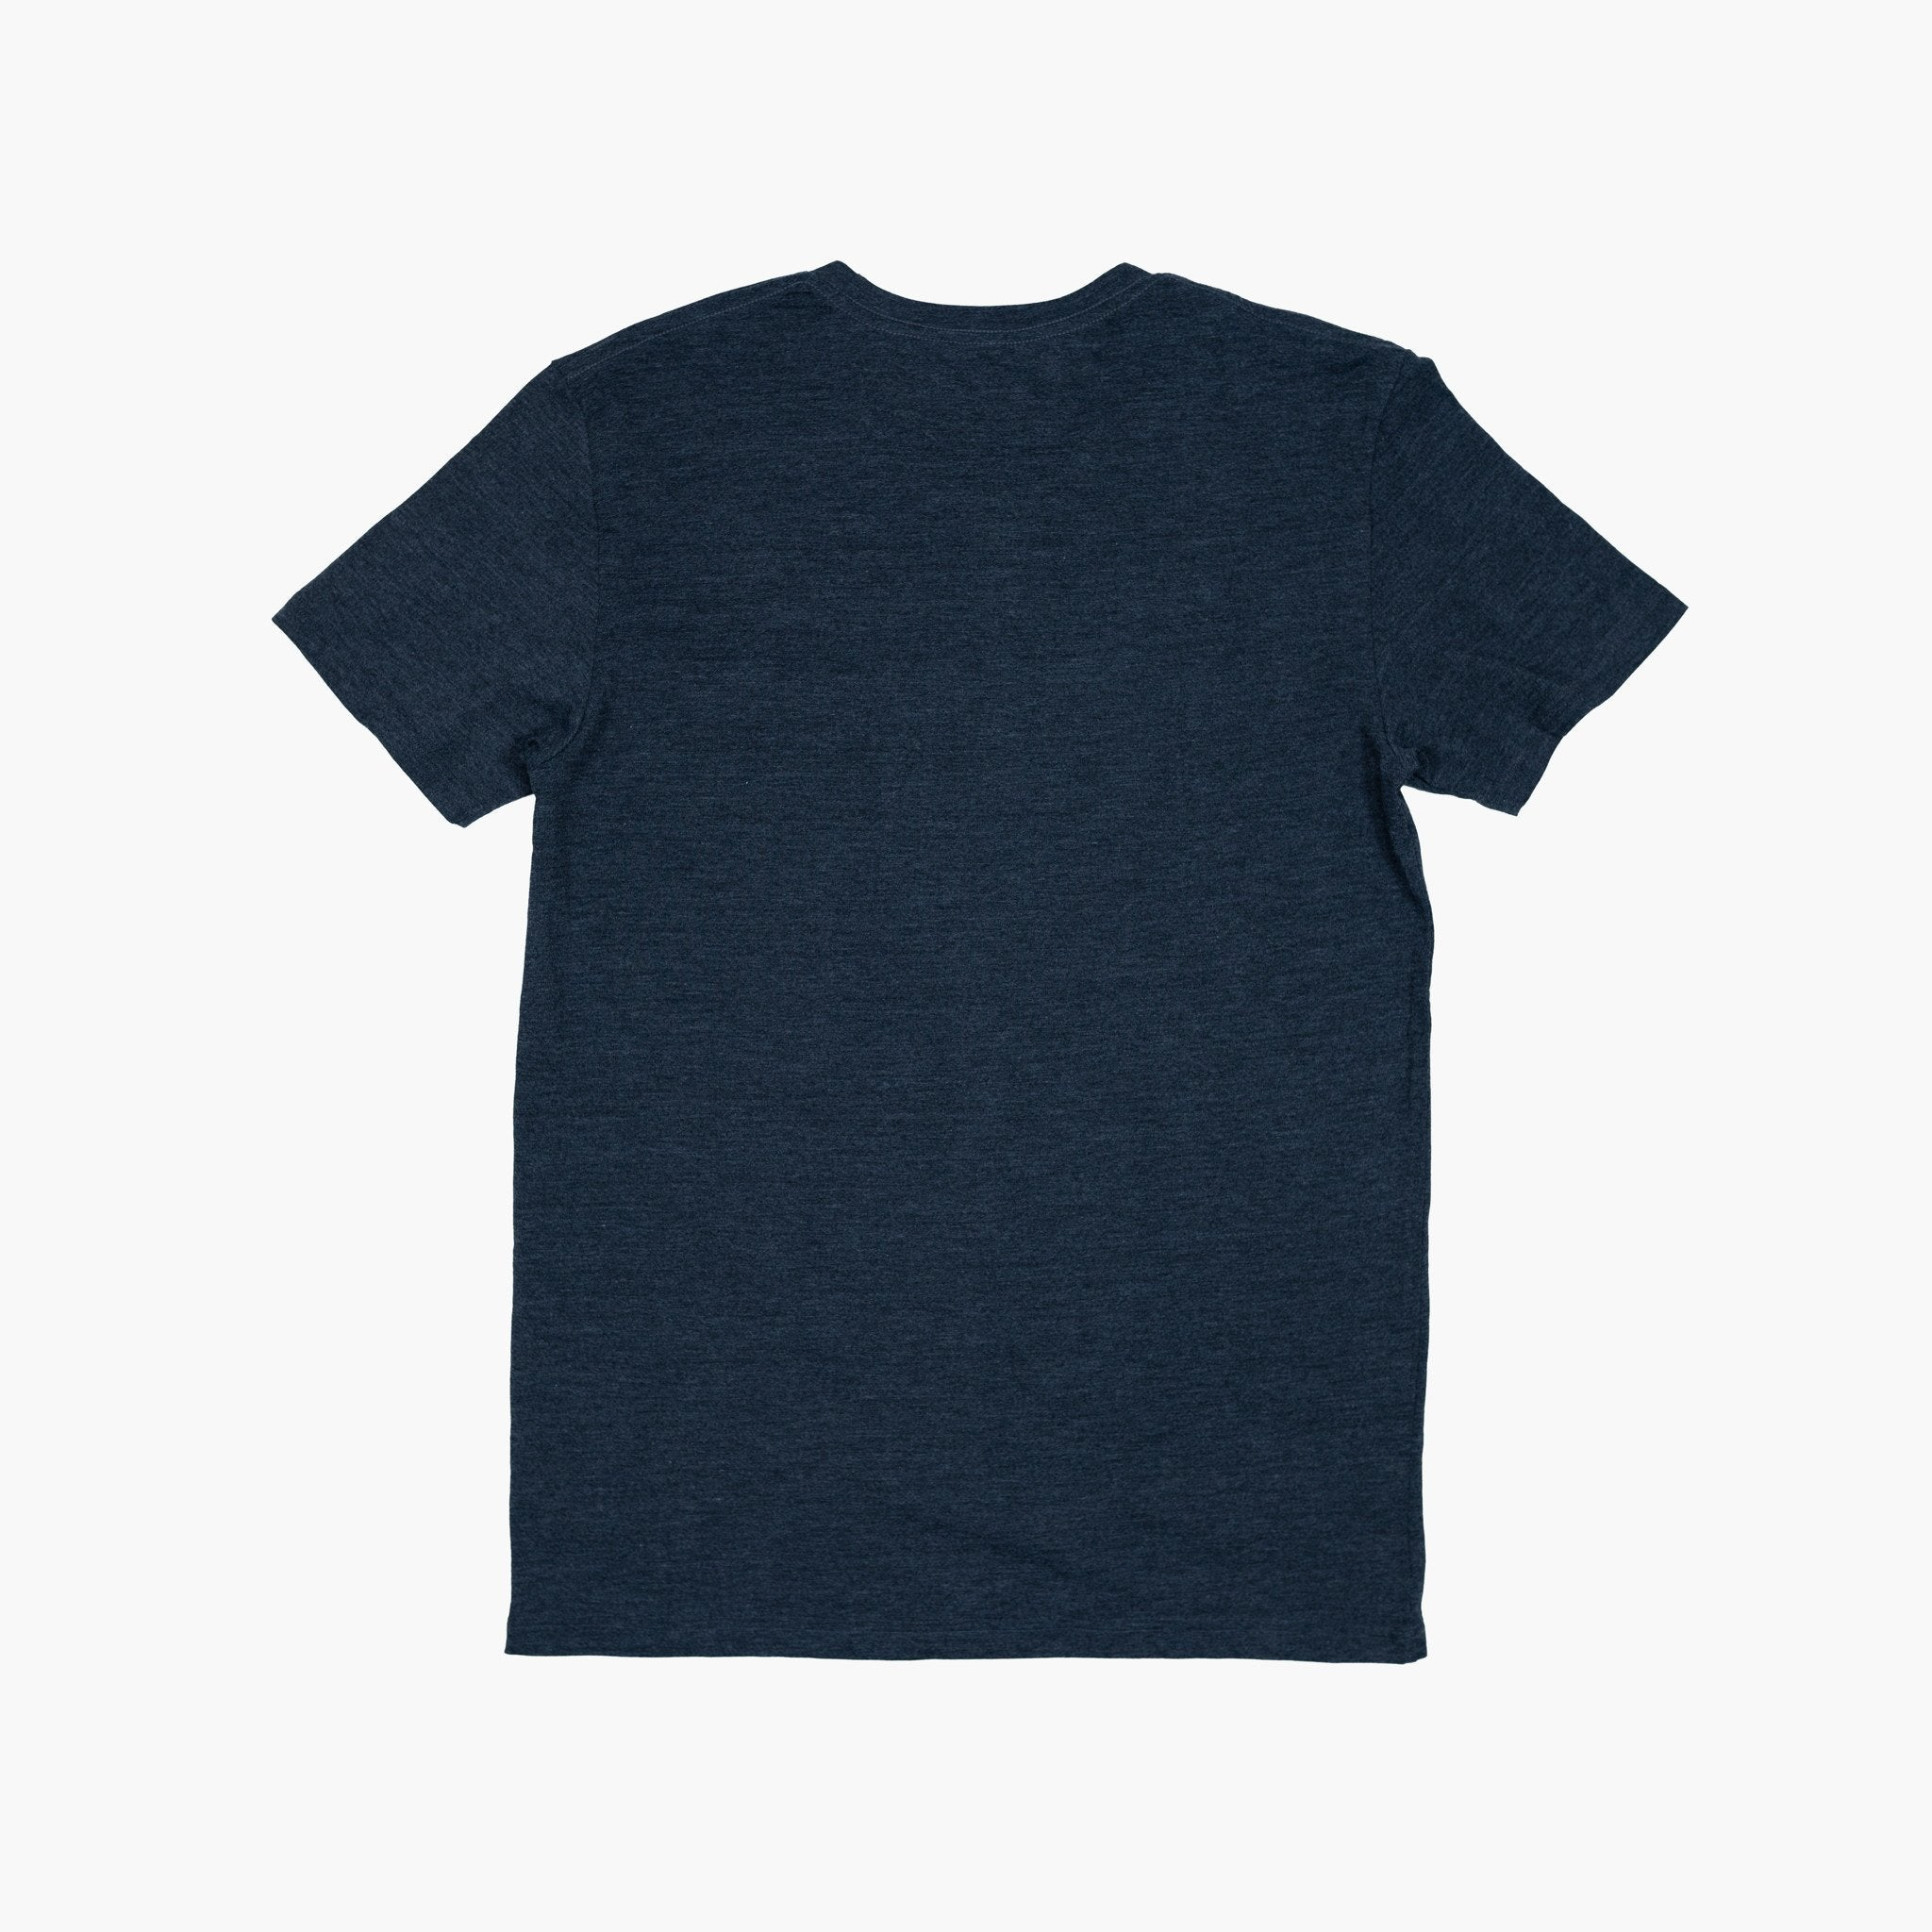 Paradise Pocket Tee - Charcoal Heather